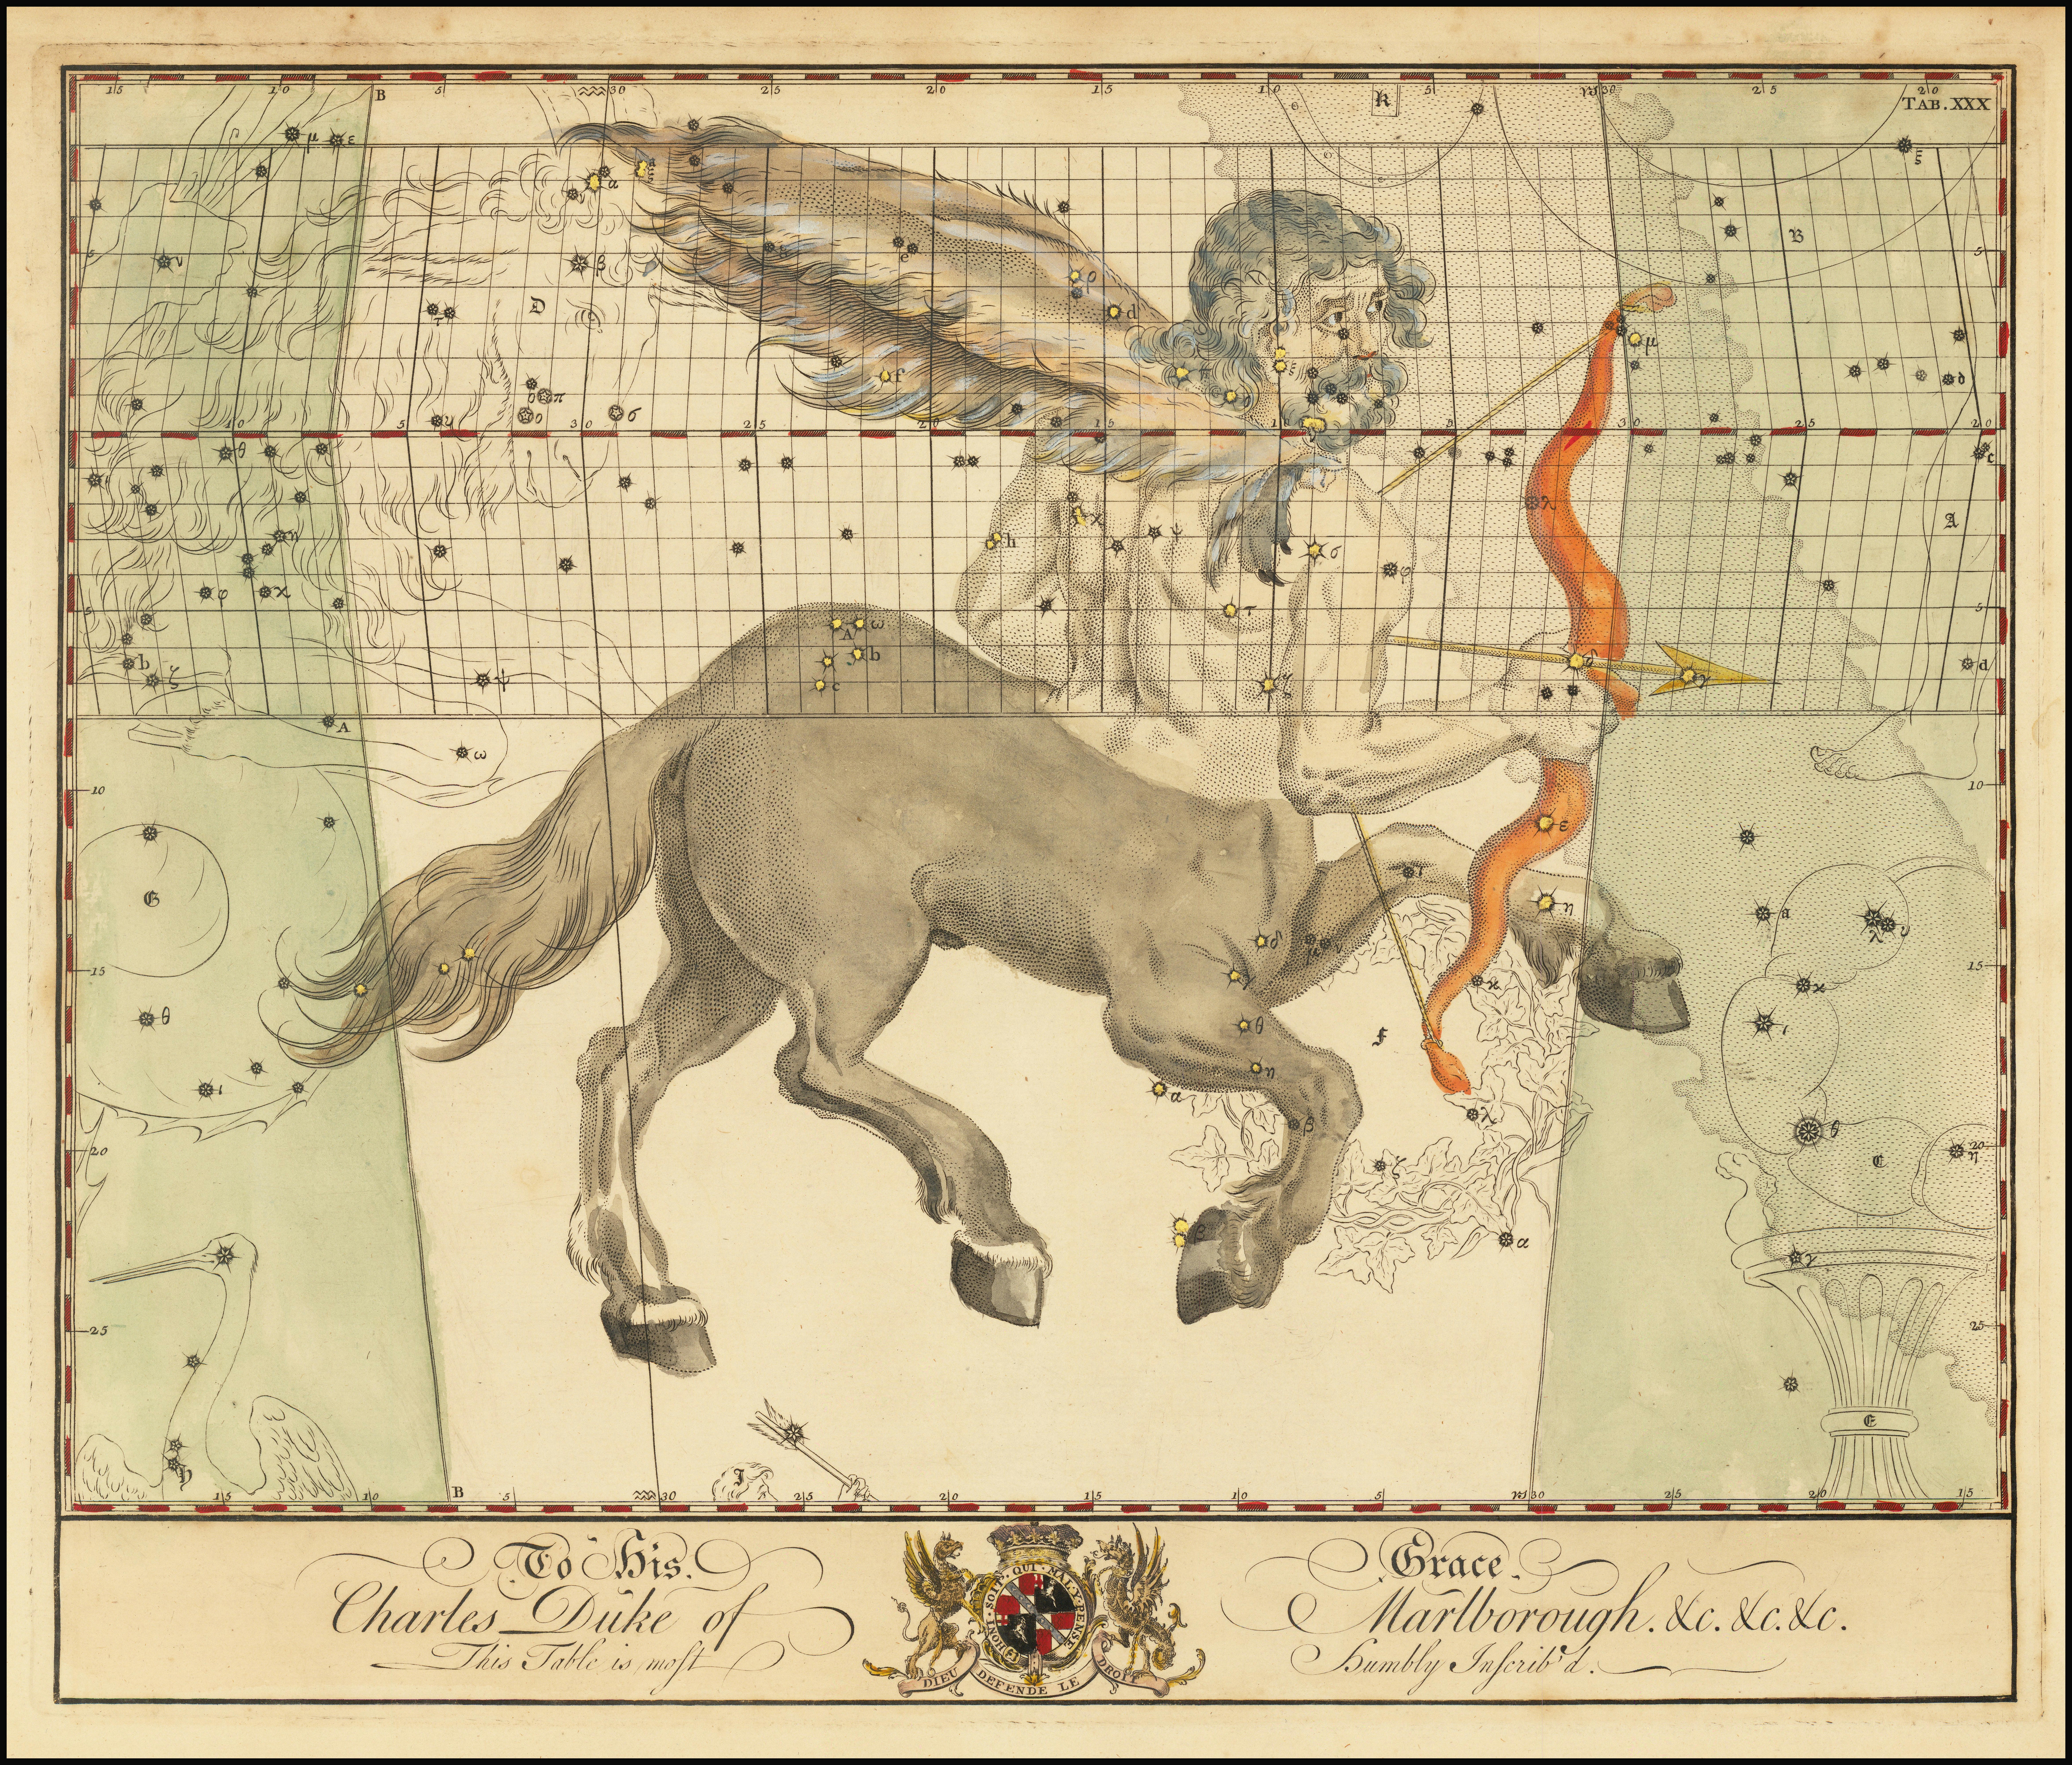 An image of Sagittarius as an astrological figure.